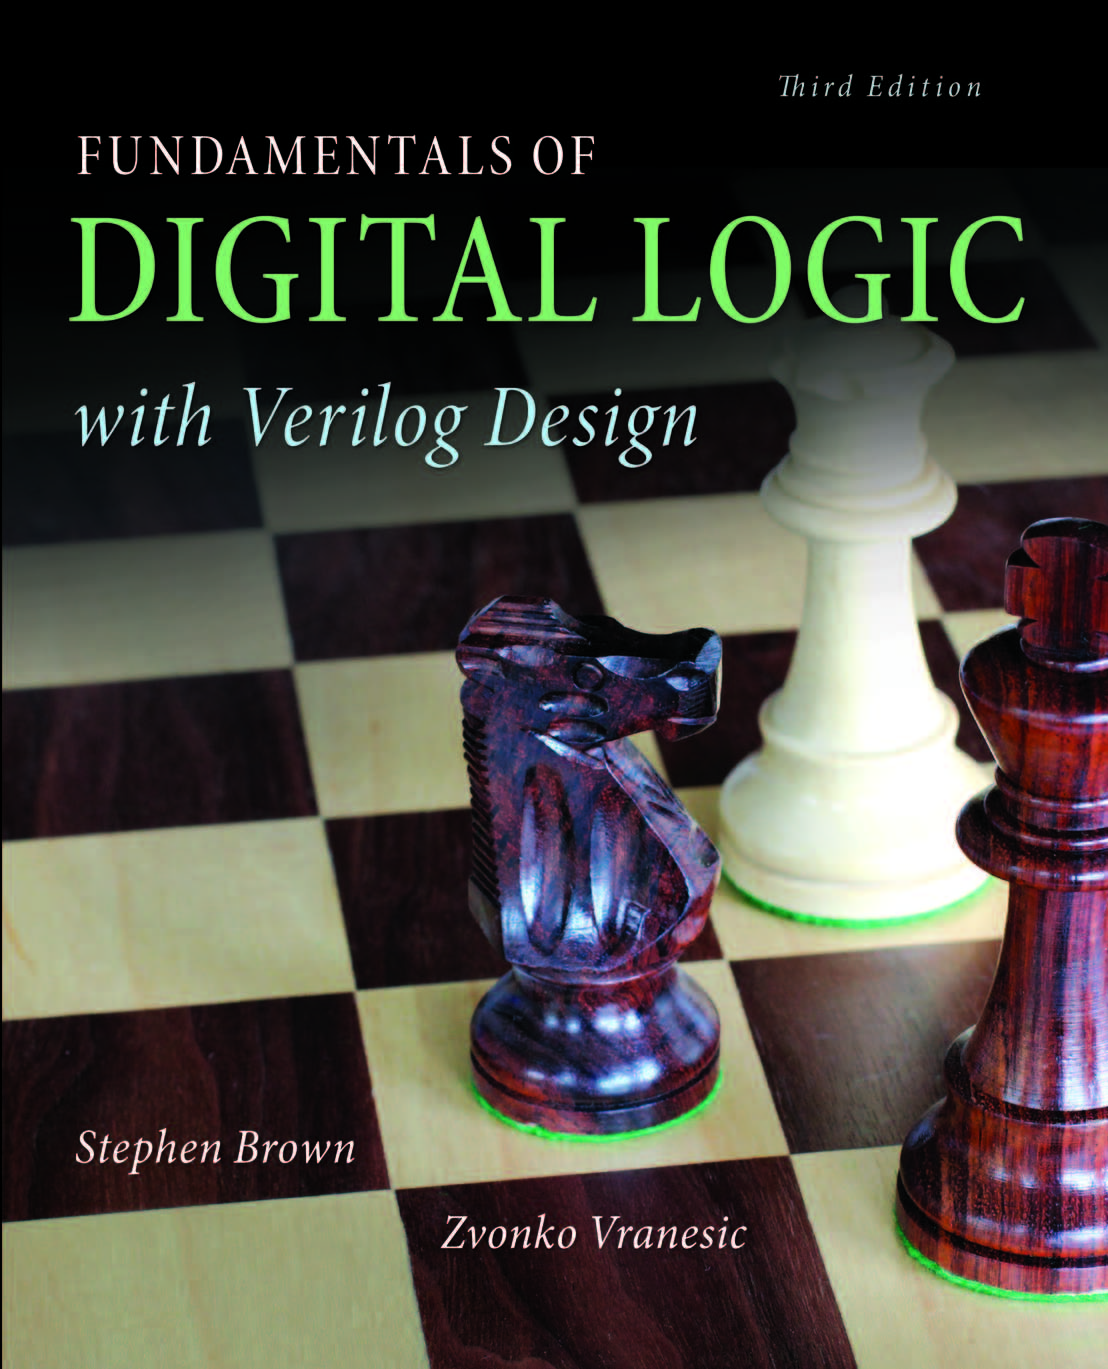 research paper on digital logic design Read this essay on digital logic design come browse our large digital warehouse of free sample essays get the knowledge you need in order to assignment 2: logical design, part 1 due week 2 and worth 50 points you have been hired by acme global consulting to procure requirements for a.